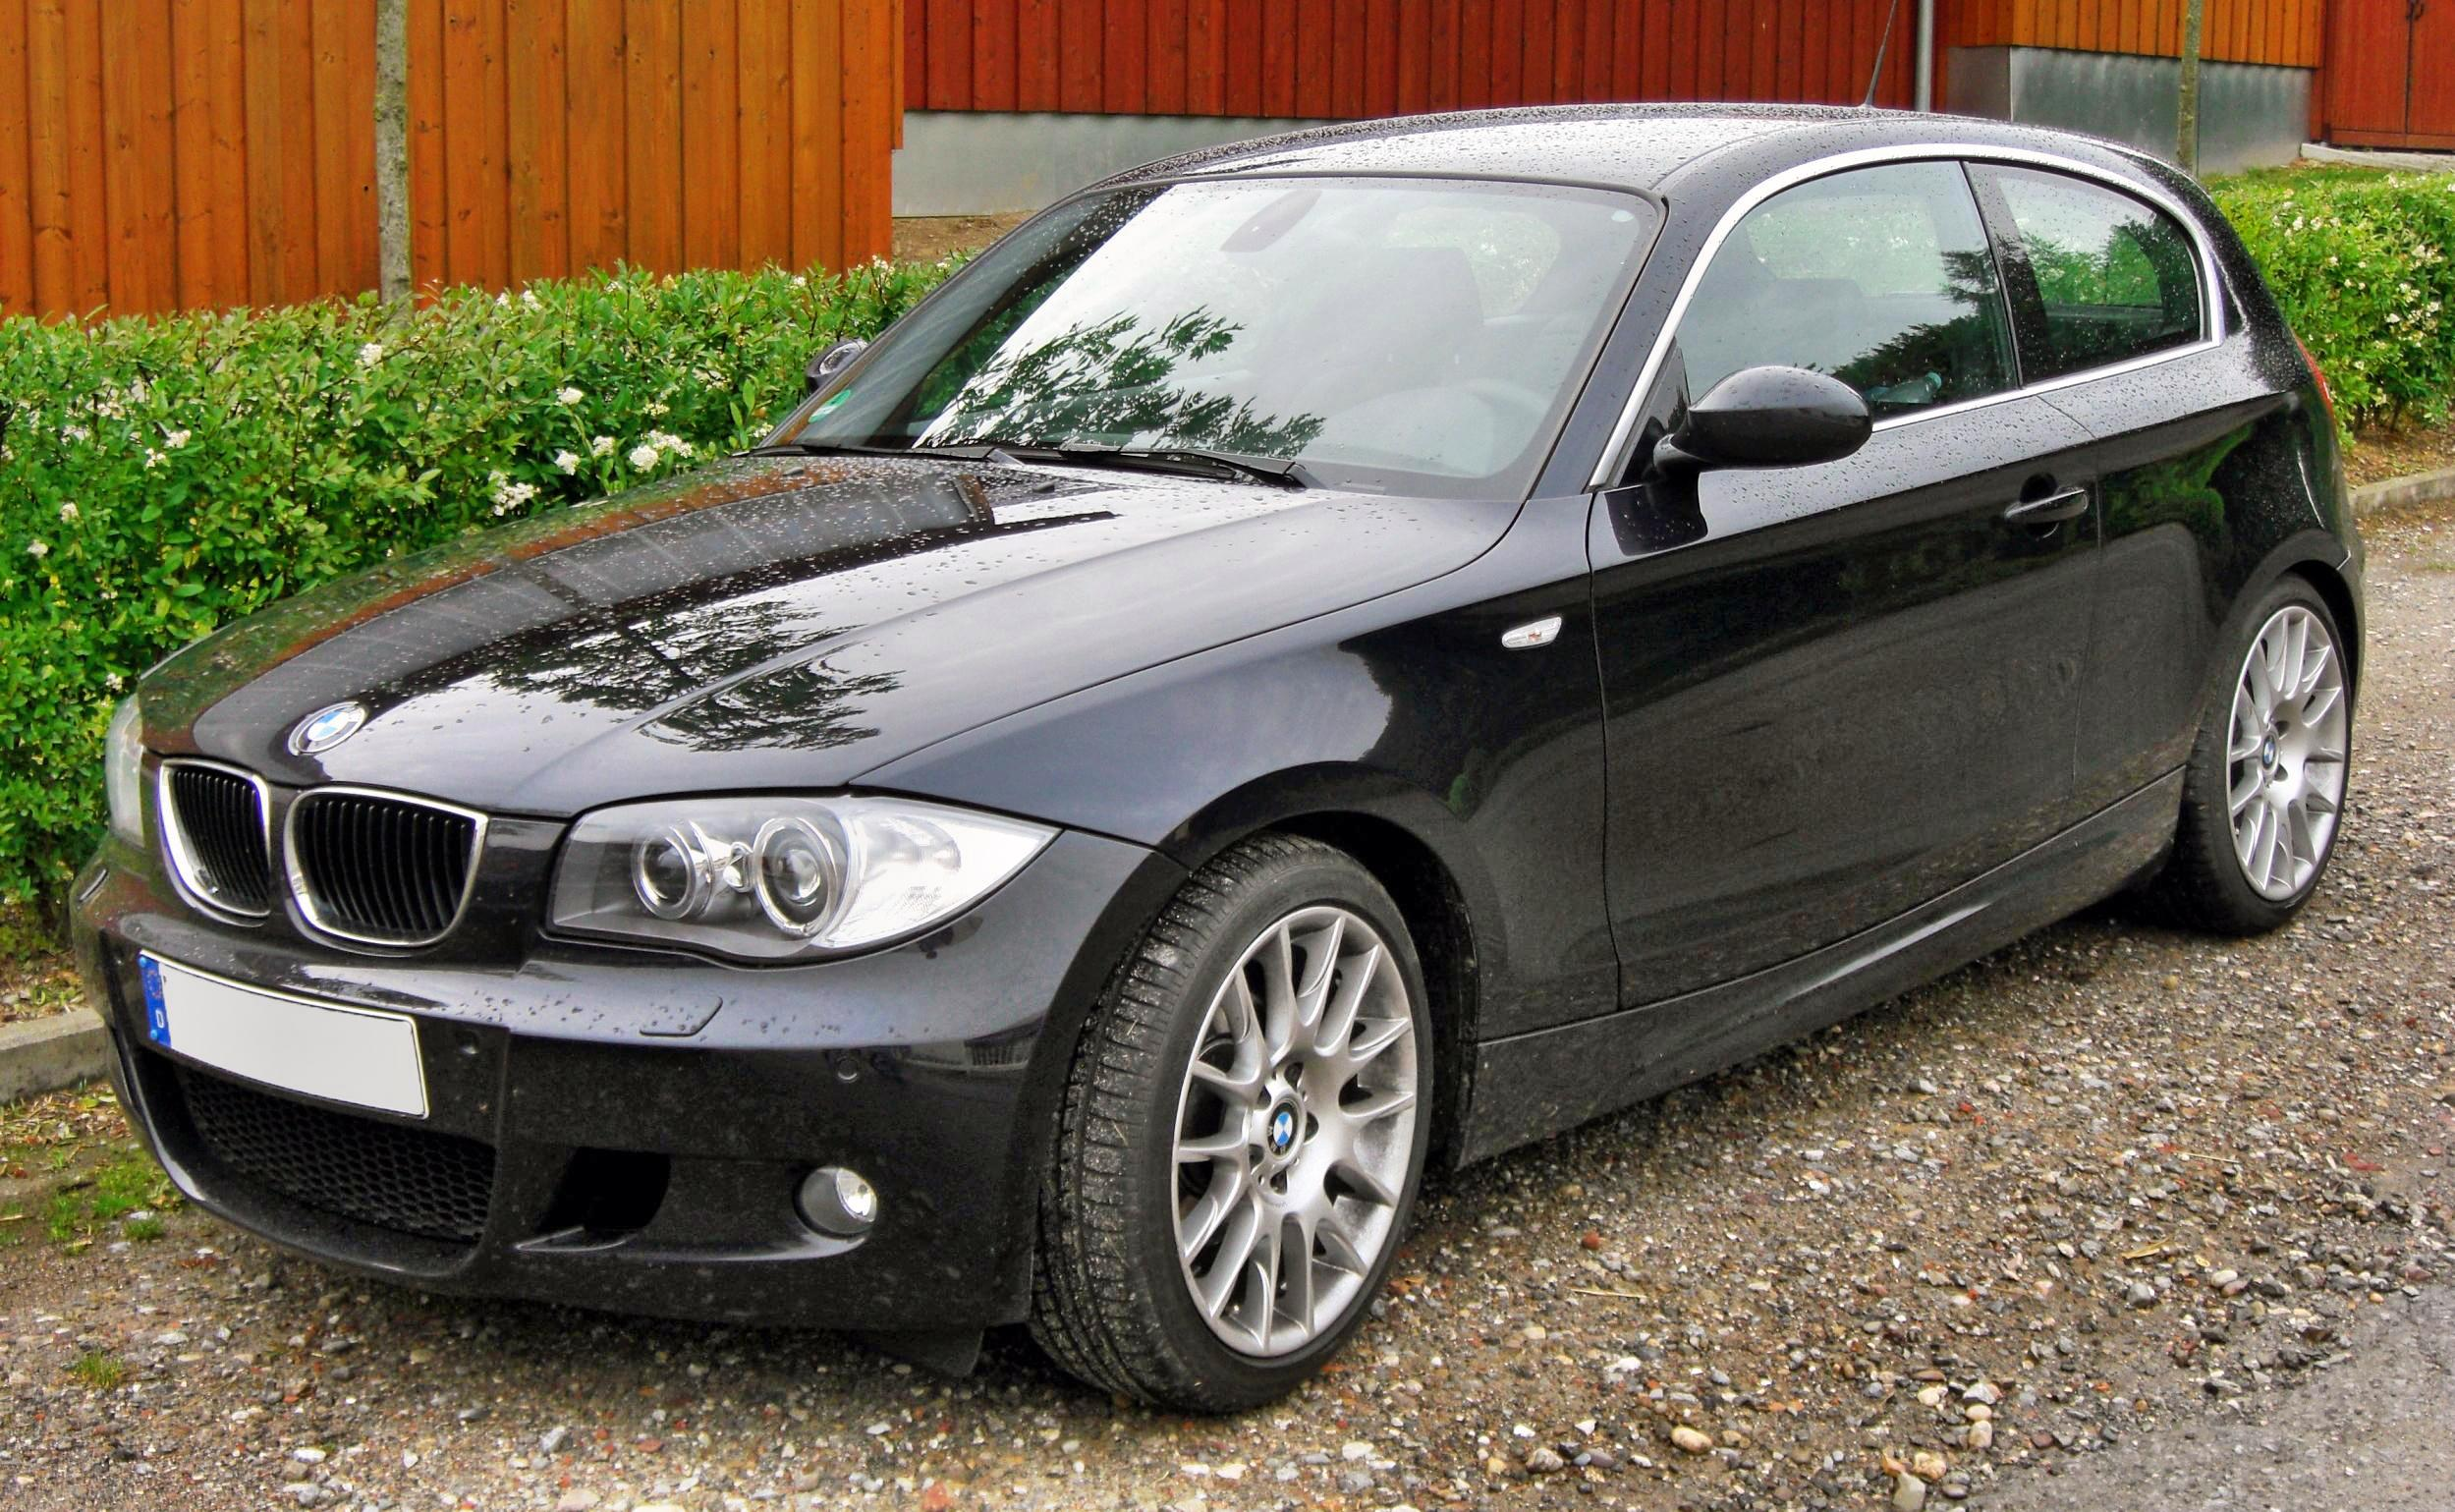 file bmw 120d m sportpaket facelift 20090615 front jpg wikimedia commons. Black Bedroom Furniture Sets. Home Design Ideas